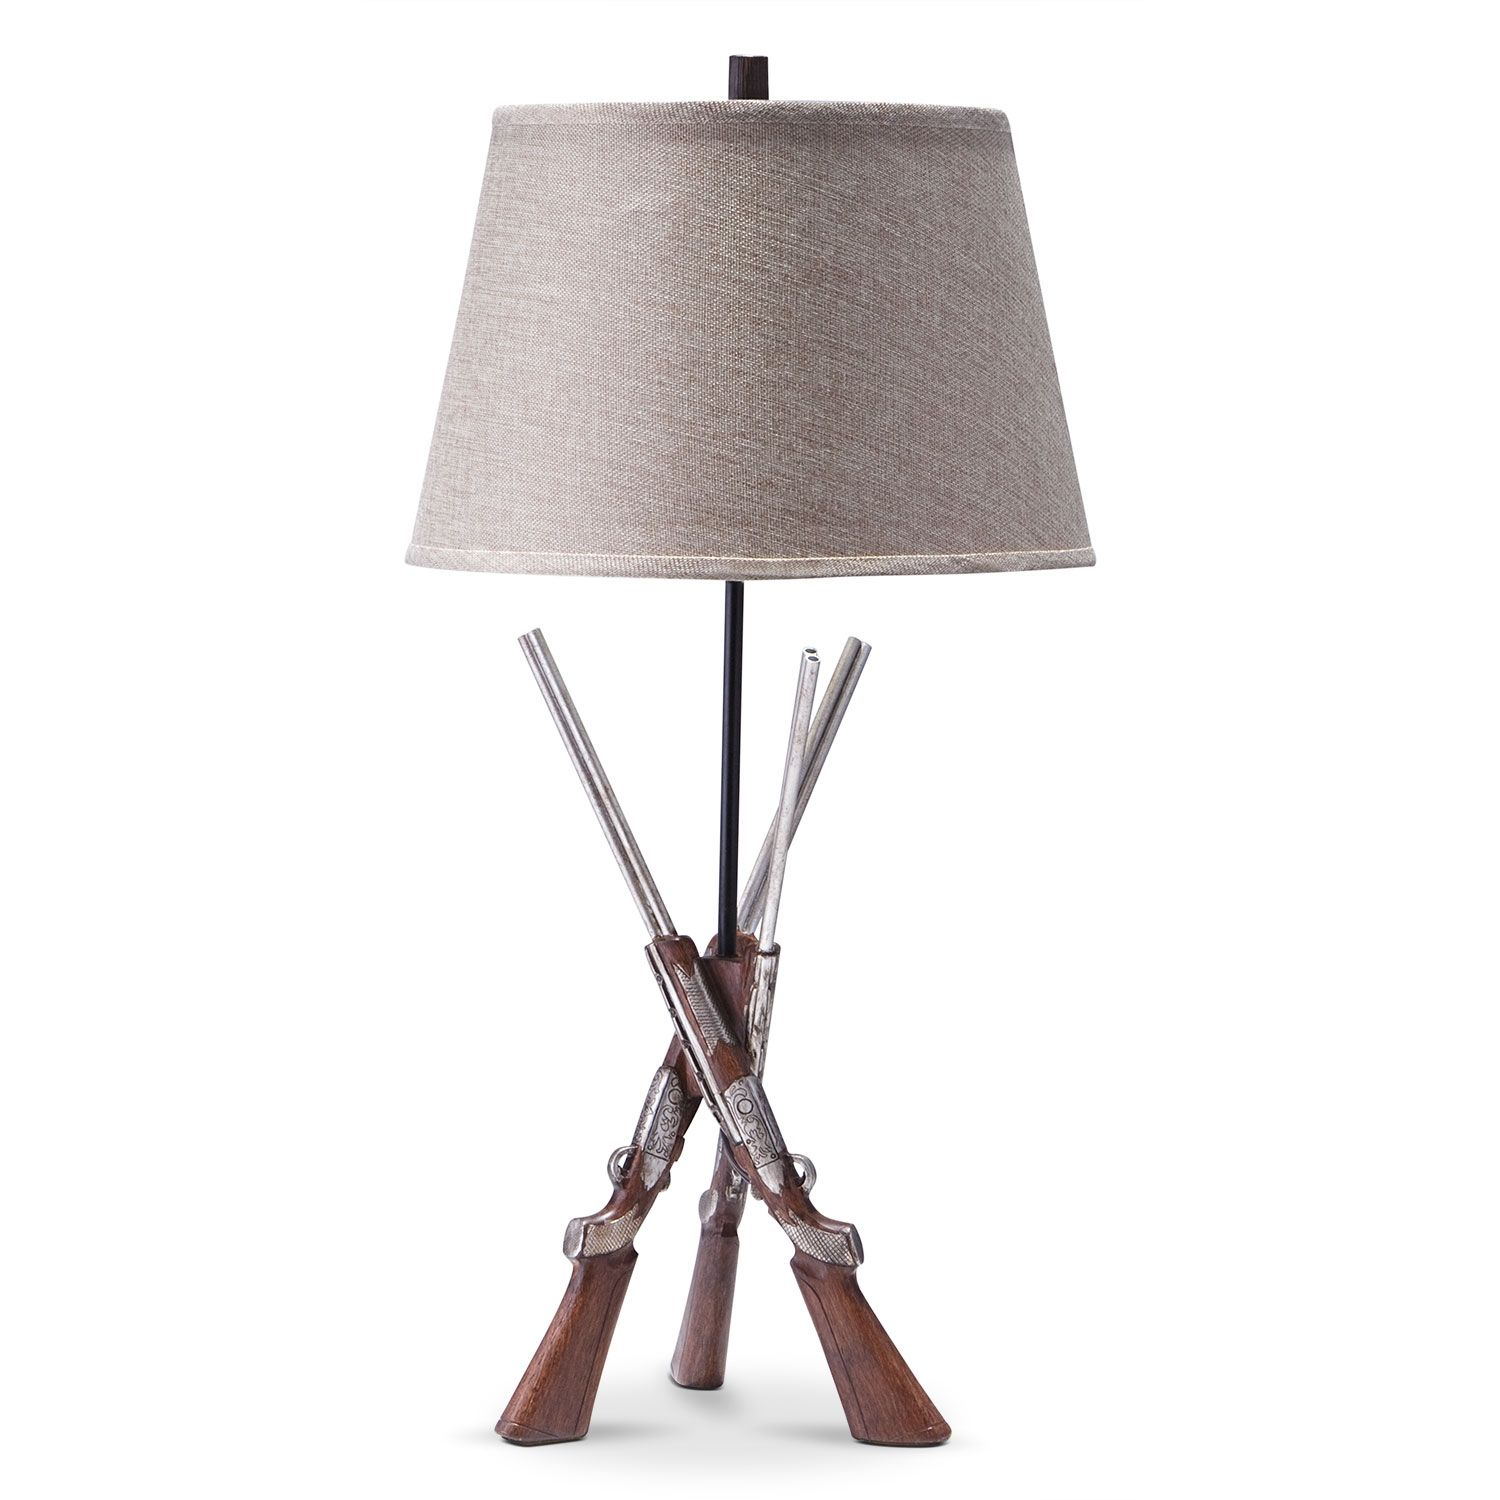 Value City Furniture Lamp Hunting Home Decor Table Lamp